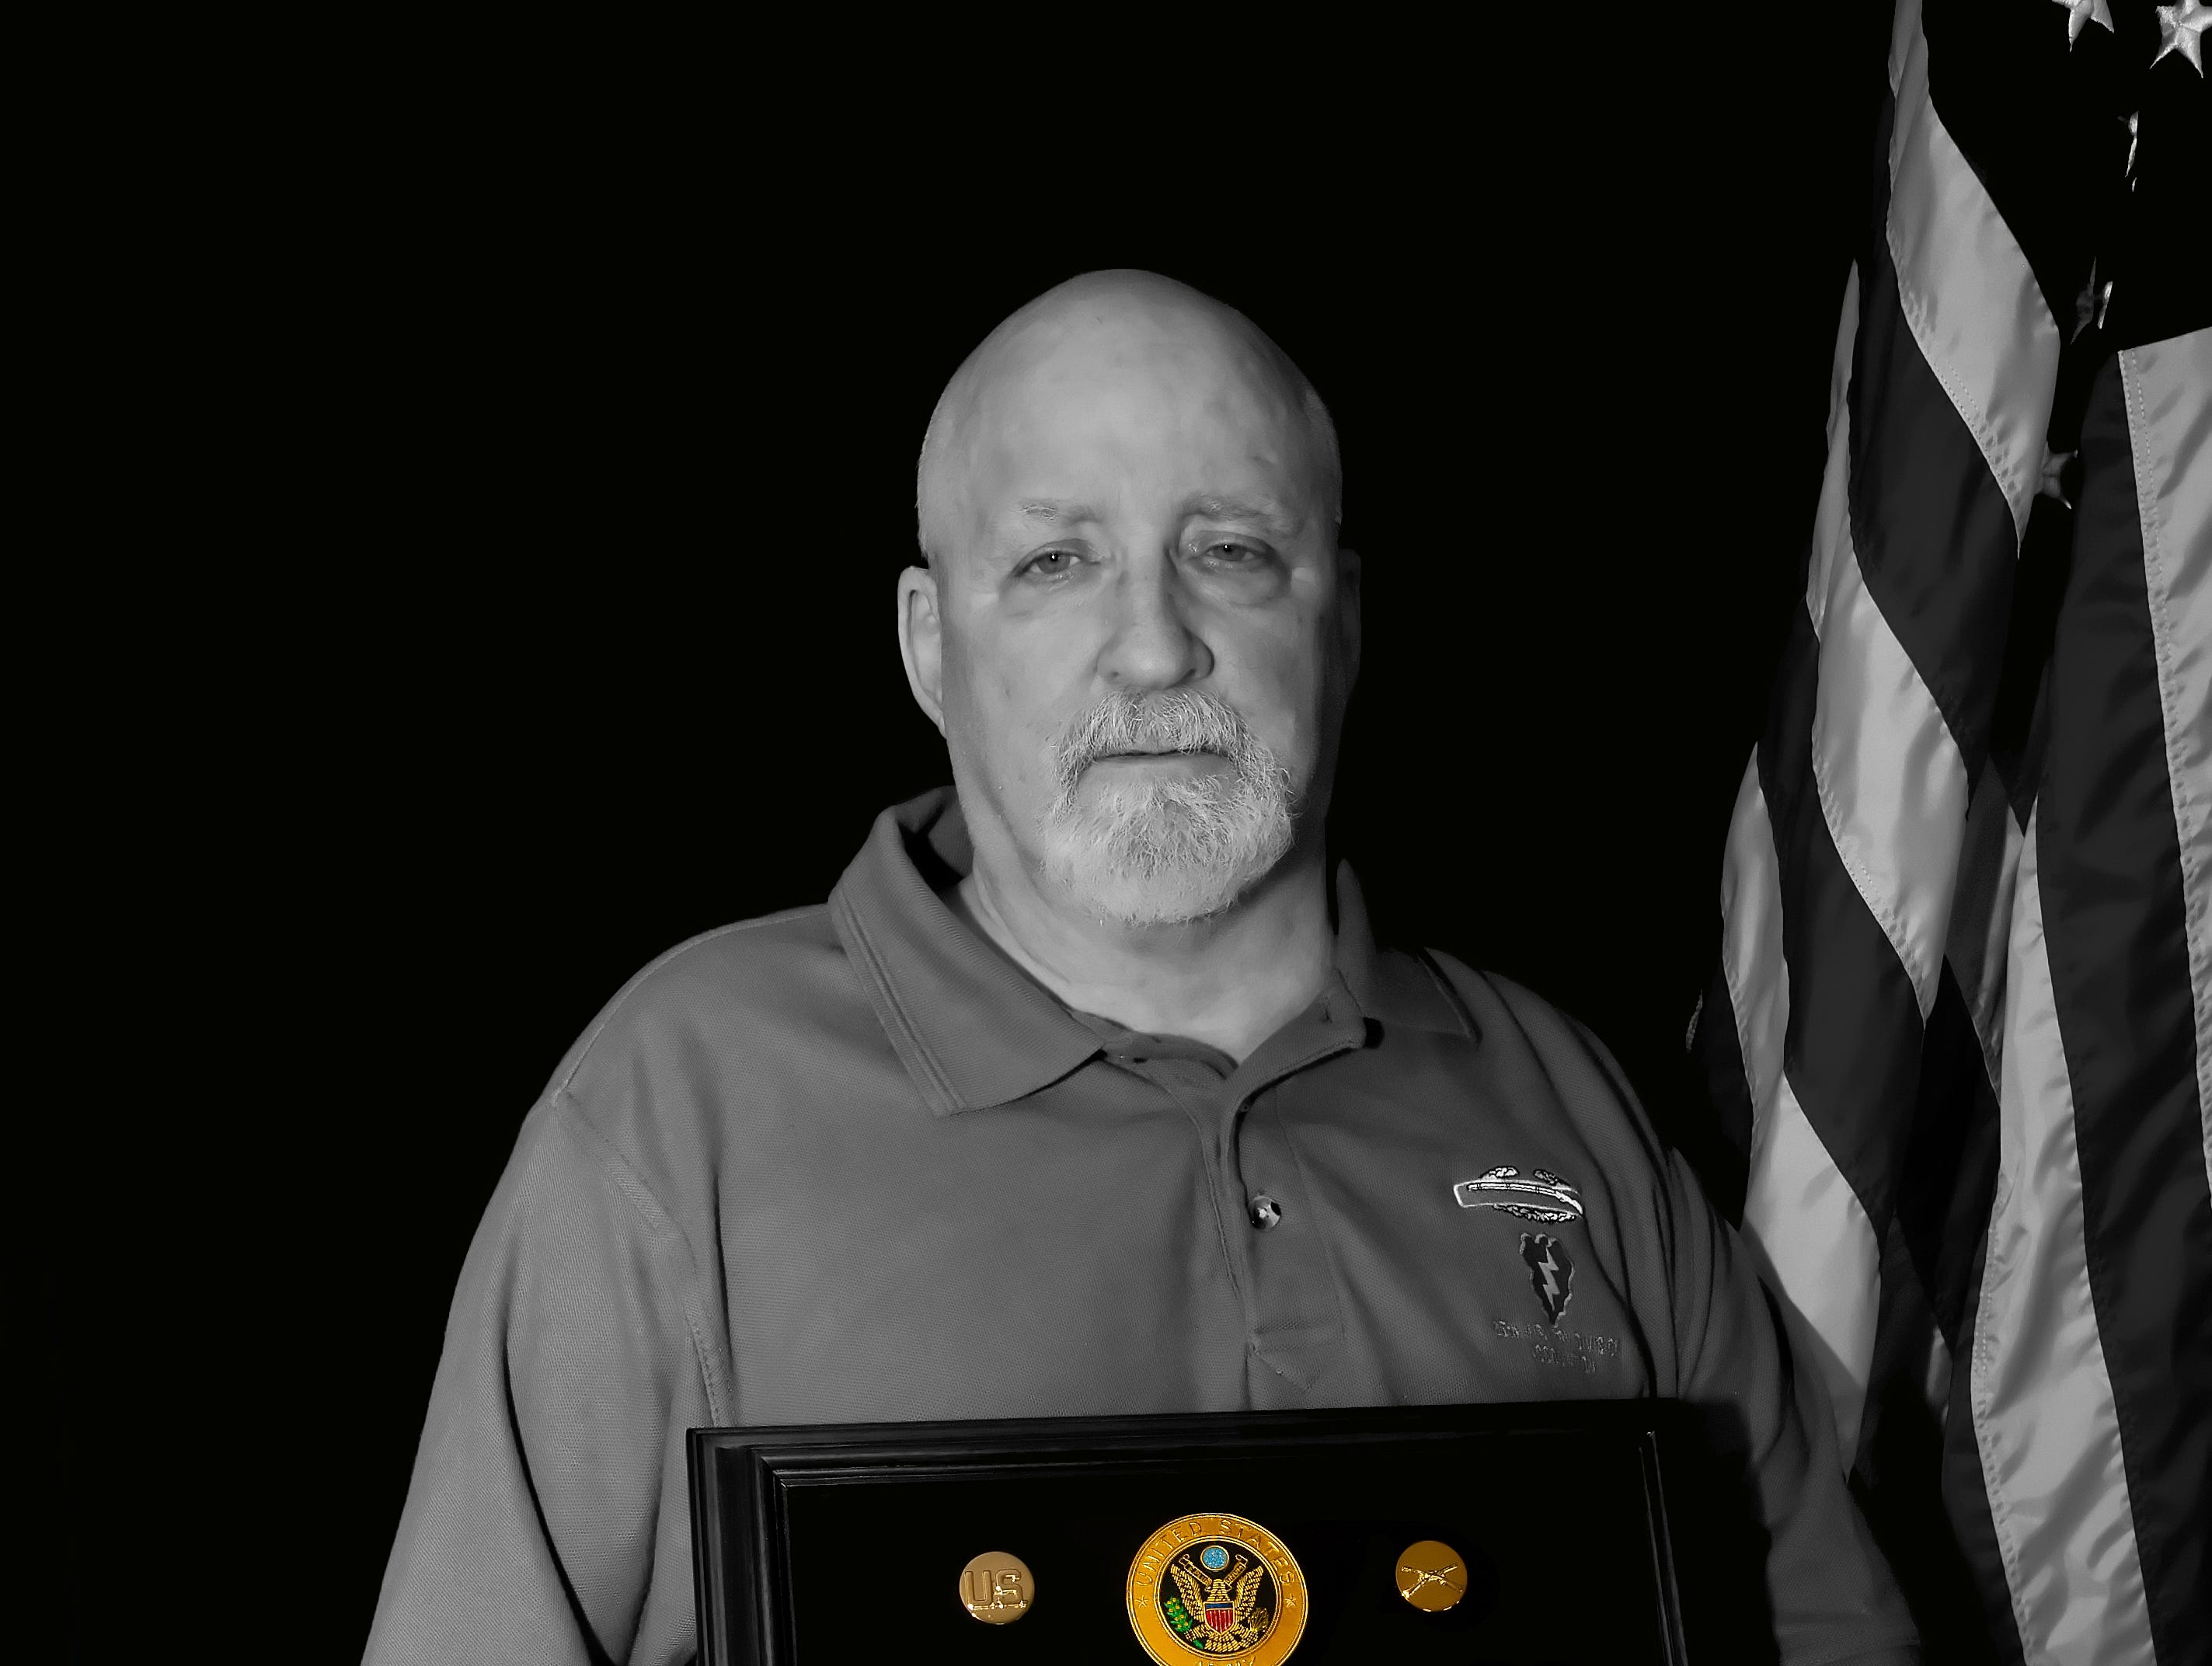 Dave Cauley of Larchwood, Iowa, poses for a photograph with the medals and stripes he earned while serving in the Vietnam War.